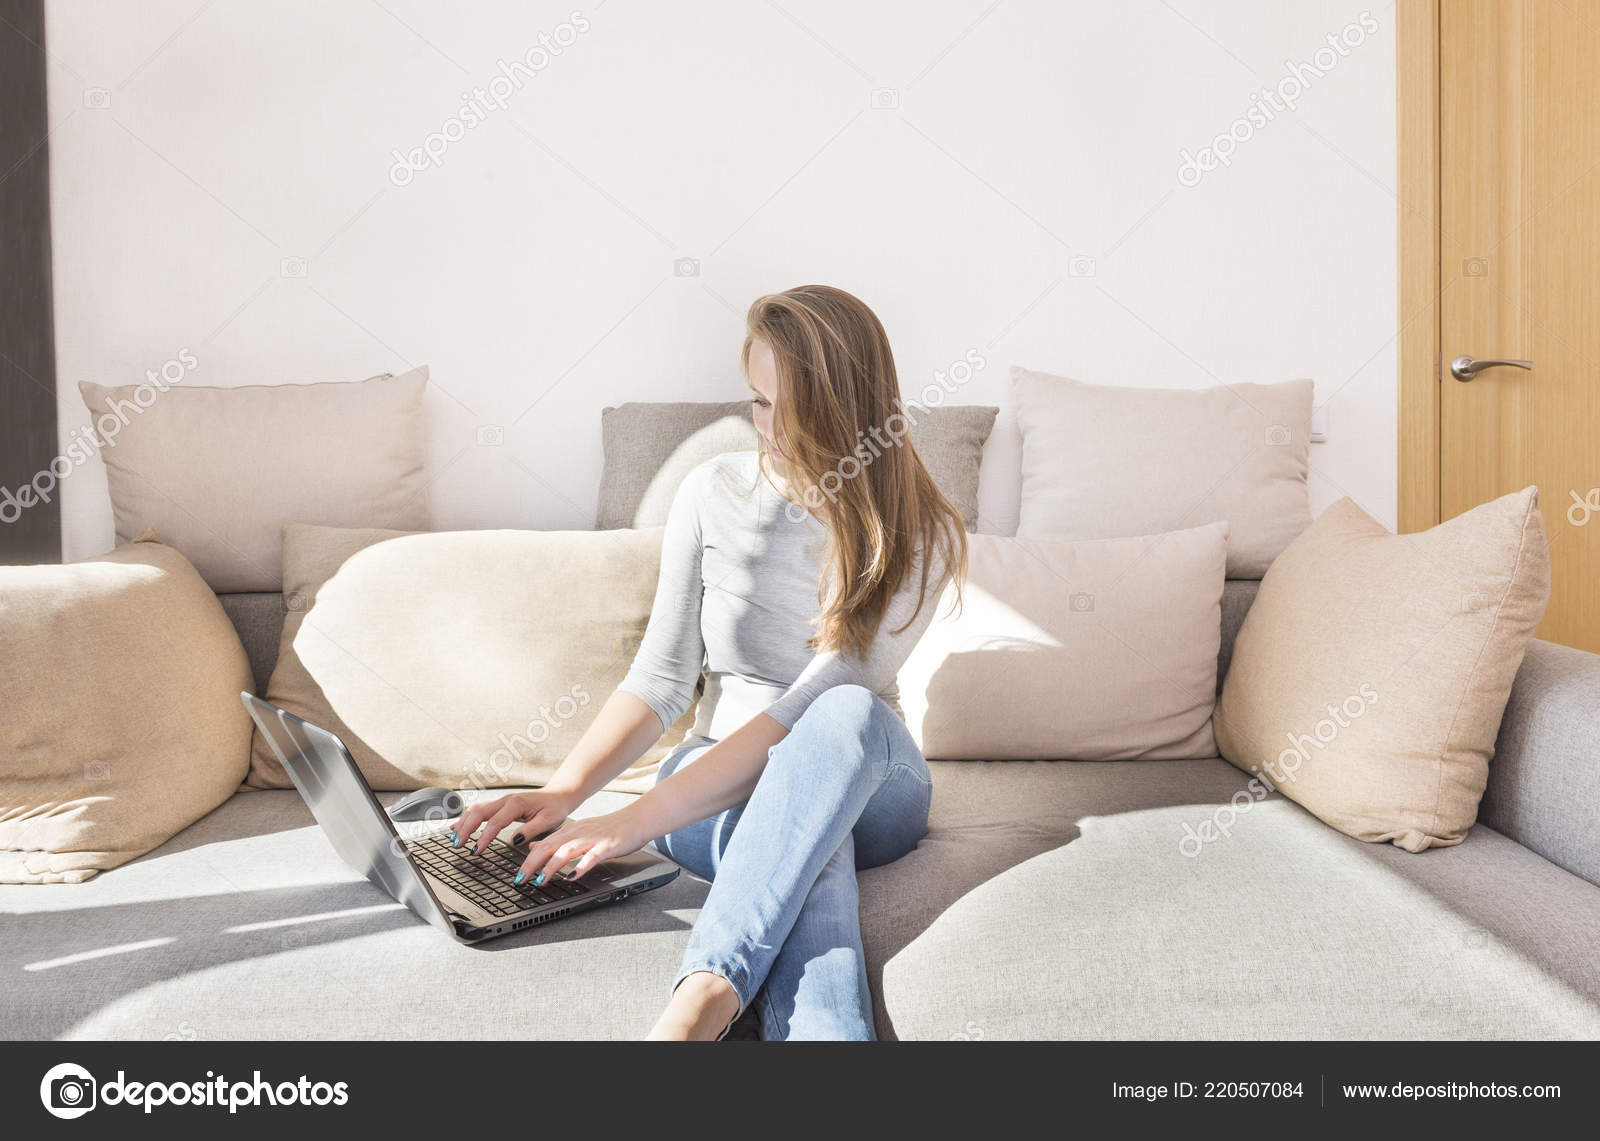 Groovy White Girl Long Hair Jeans Sitting Couch Laptop Man Gadget Squirreltailoven Fun Painted Chair Ideas Images Squirreltailovenorg